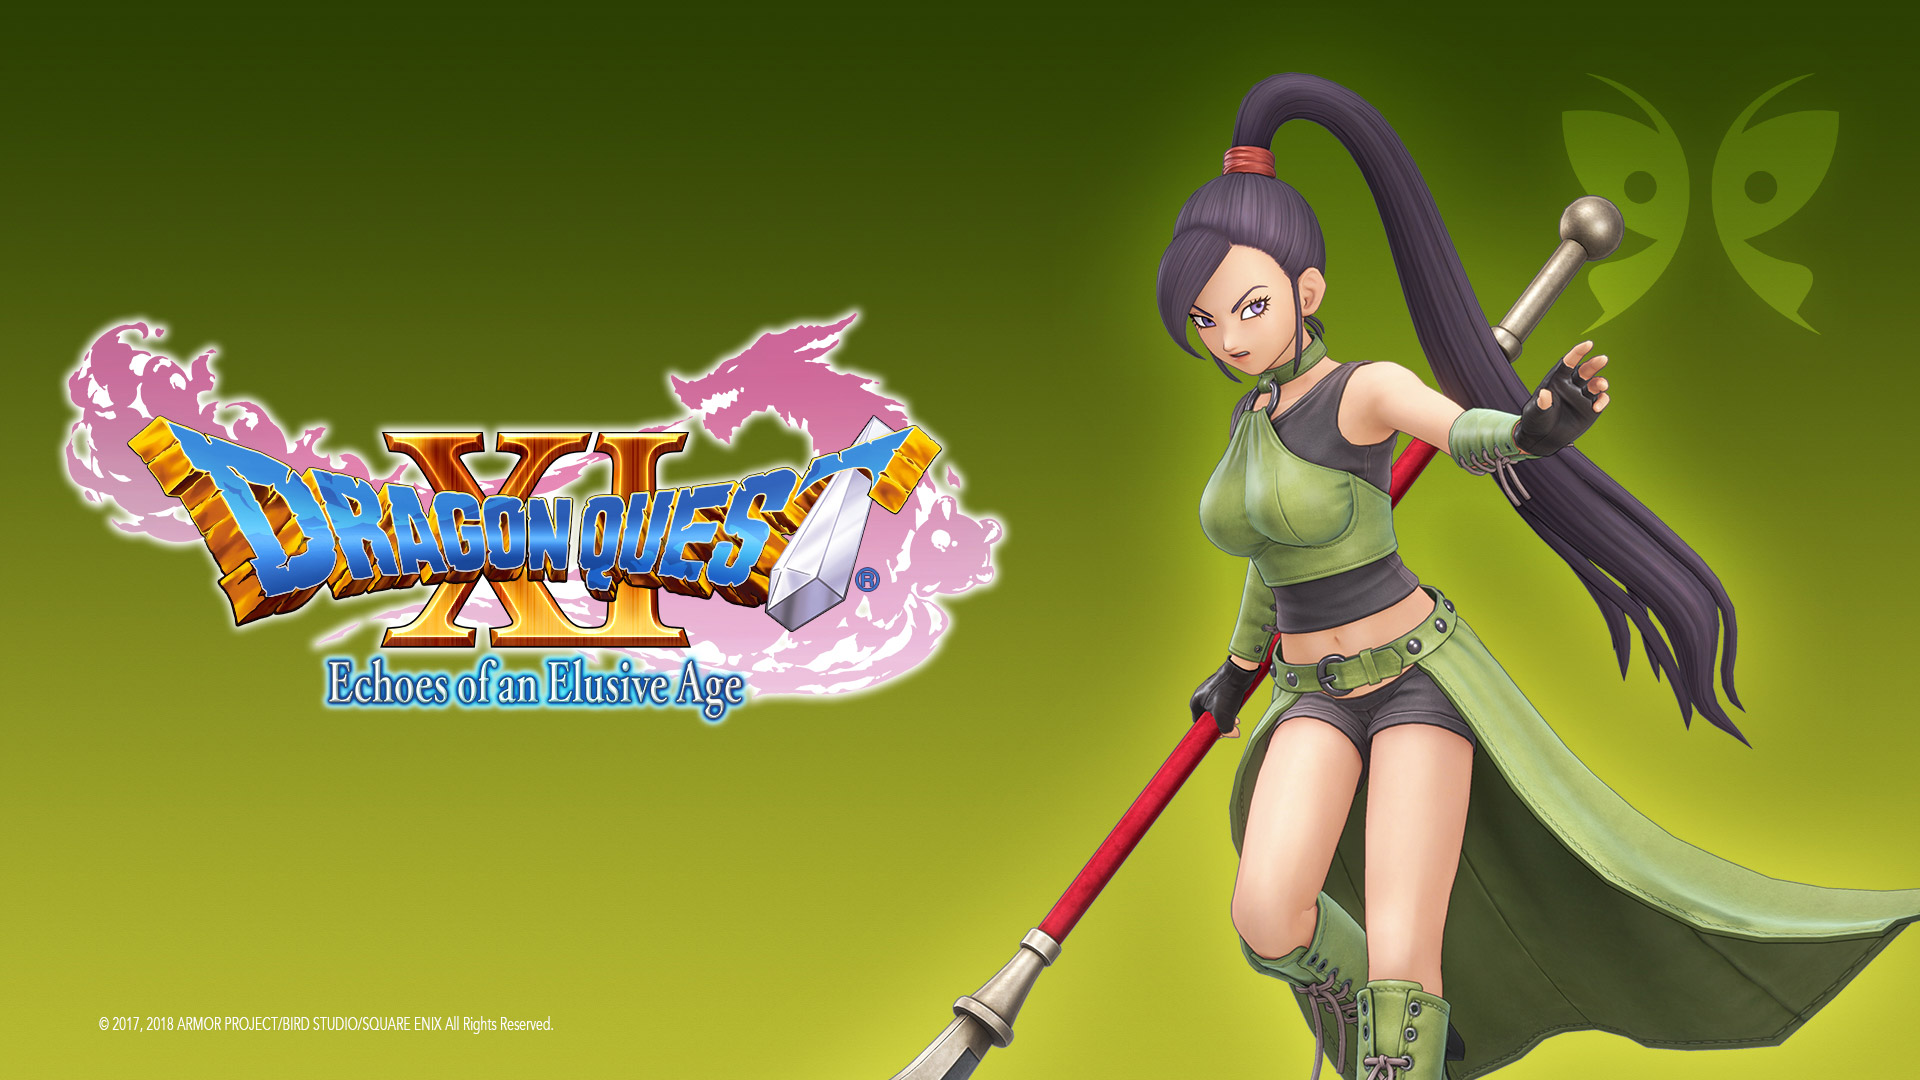 Dragon Quest Xi Echoes Of An Elusive Age Wallpaper 09 Jade Wallpapers Ethereal Games